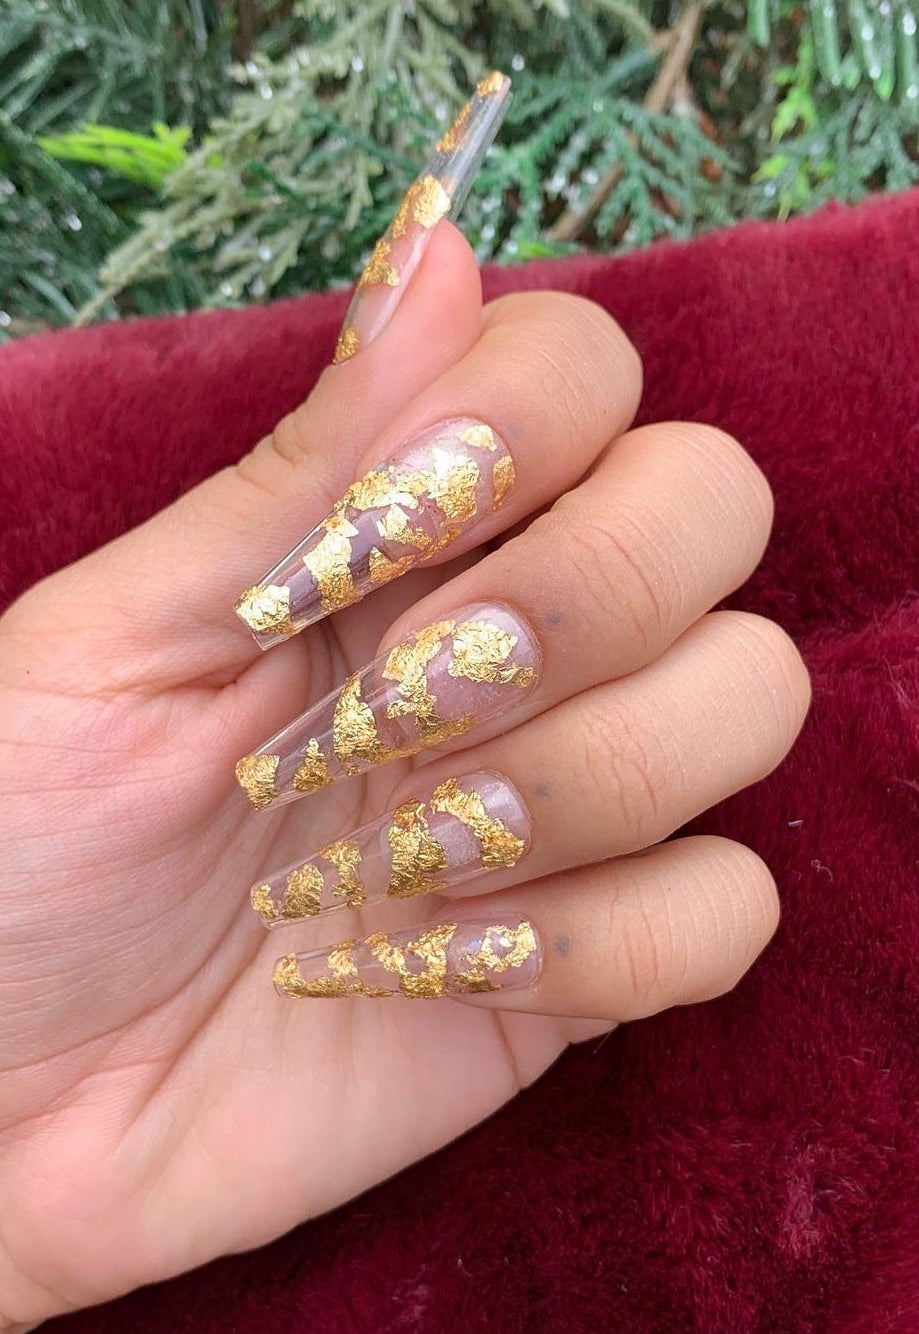 Transparent nails with gold flakes